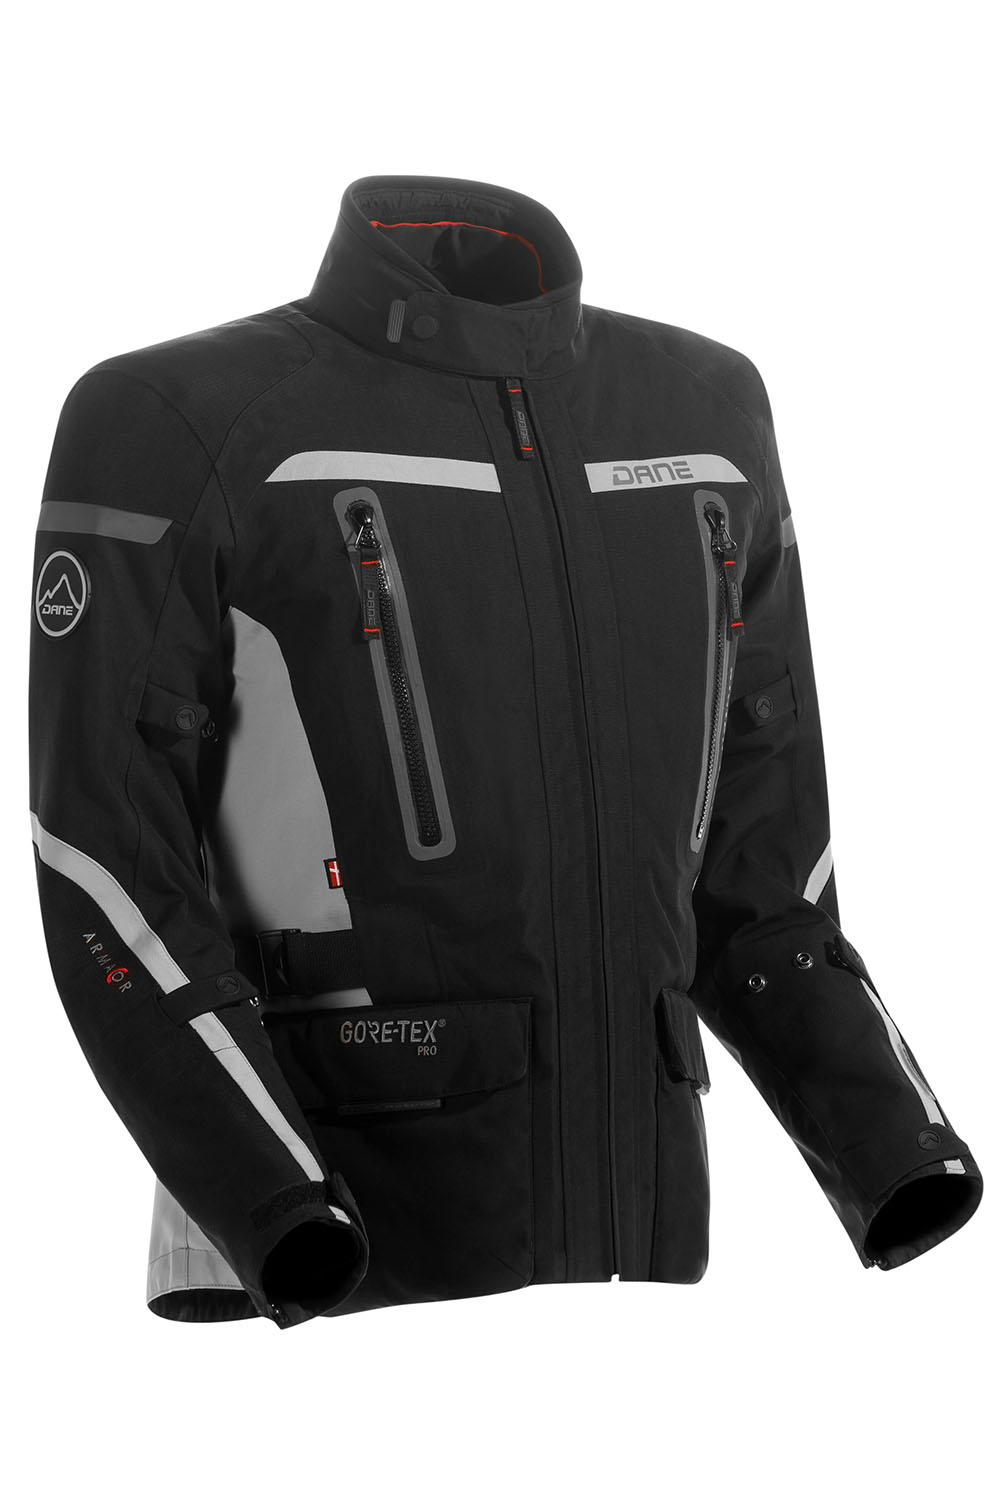 dane torben 2 gore tex pro motorradjacke im motoport. Black Bedroom Furniture Sets. Home Design Ideas